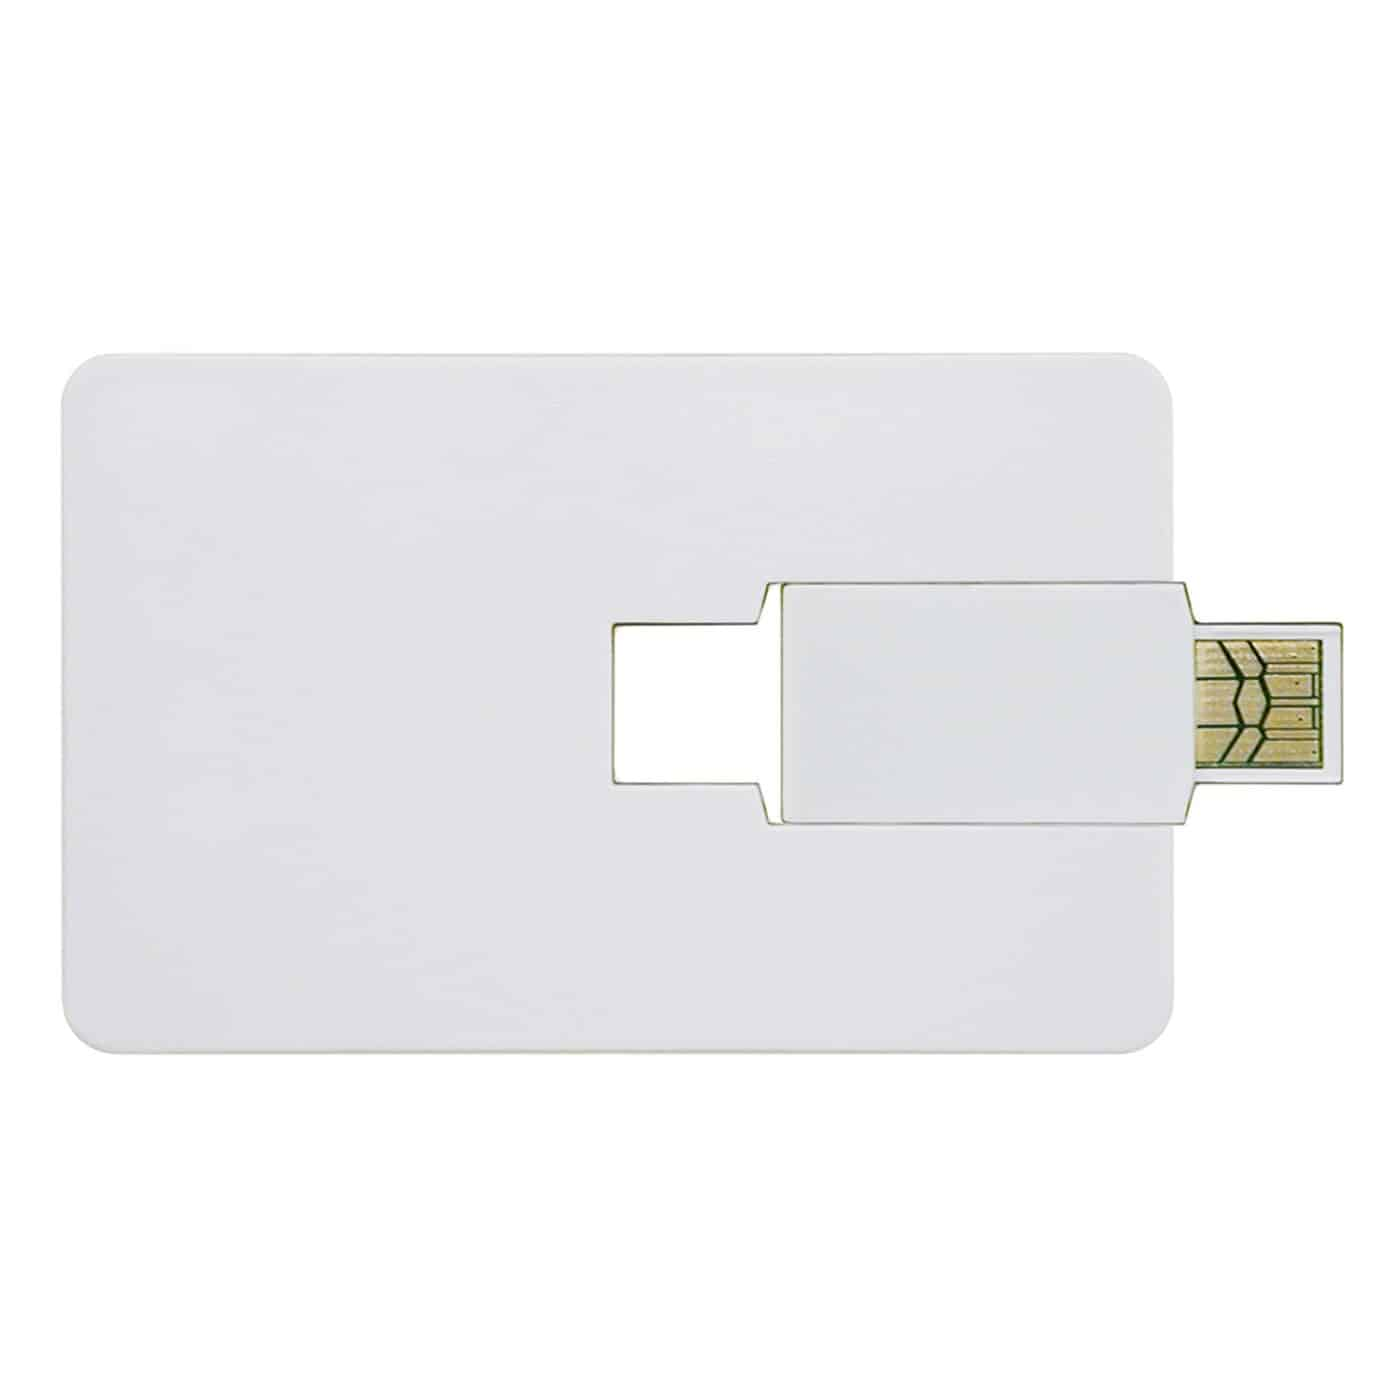 Credit Card USB Flash Drive - 4GB